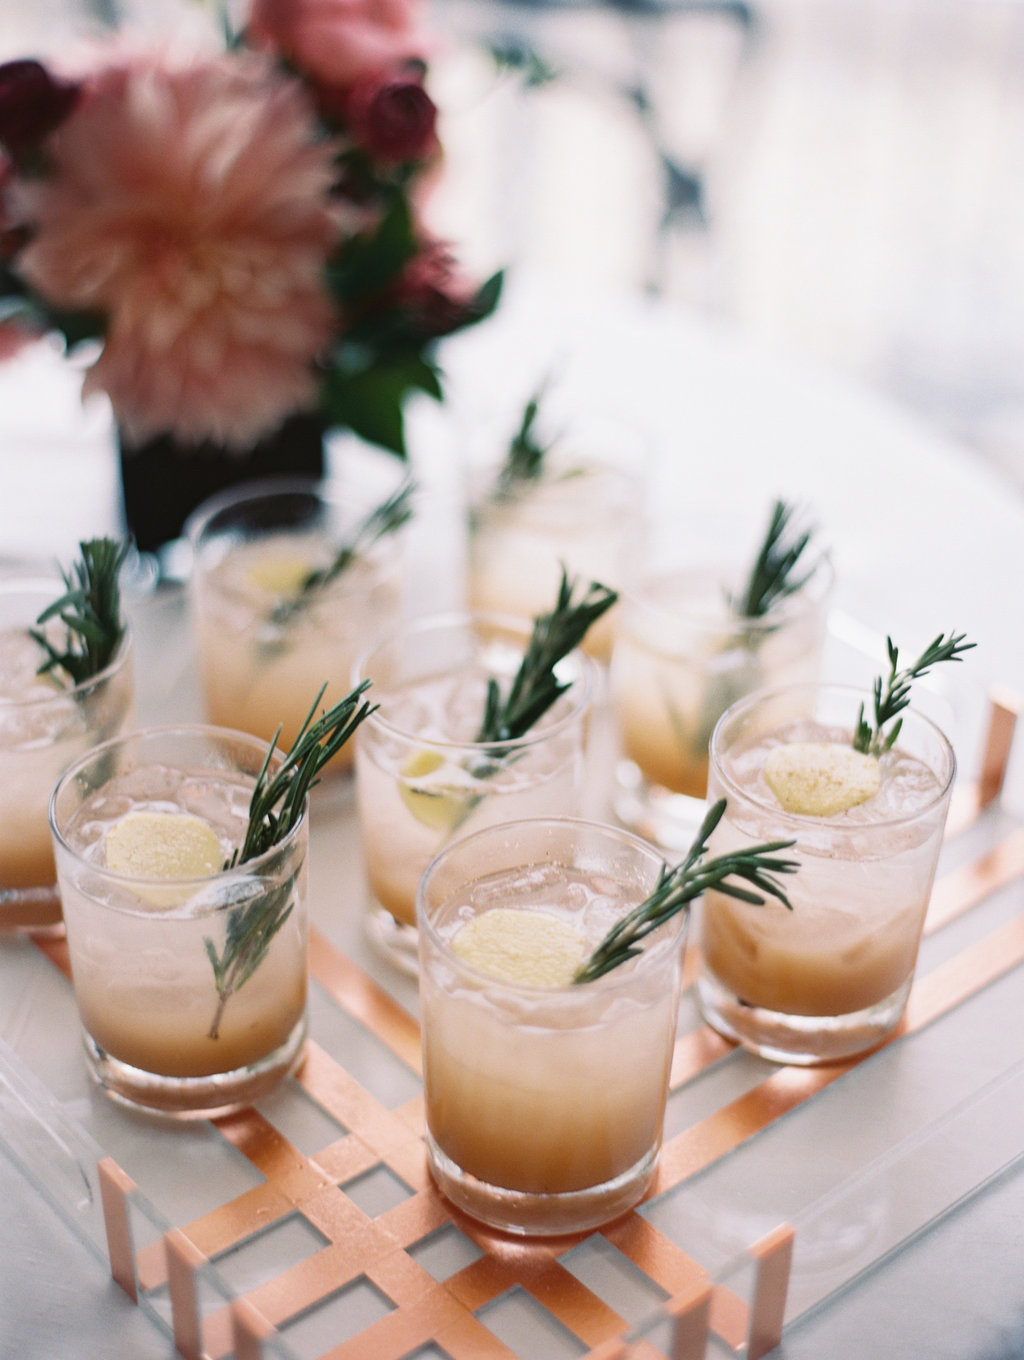 wedding cocktails with rosemary - photo by Abby Jiu Photography https://ruffledblog.com/modern-metallics-wedding-in-downtown-washington-dc